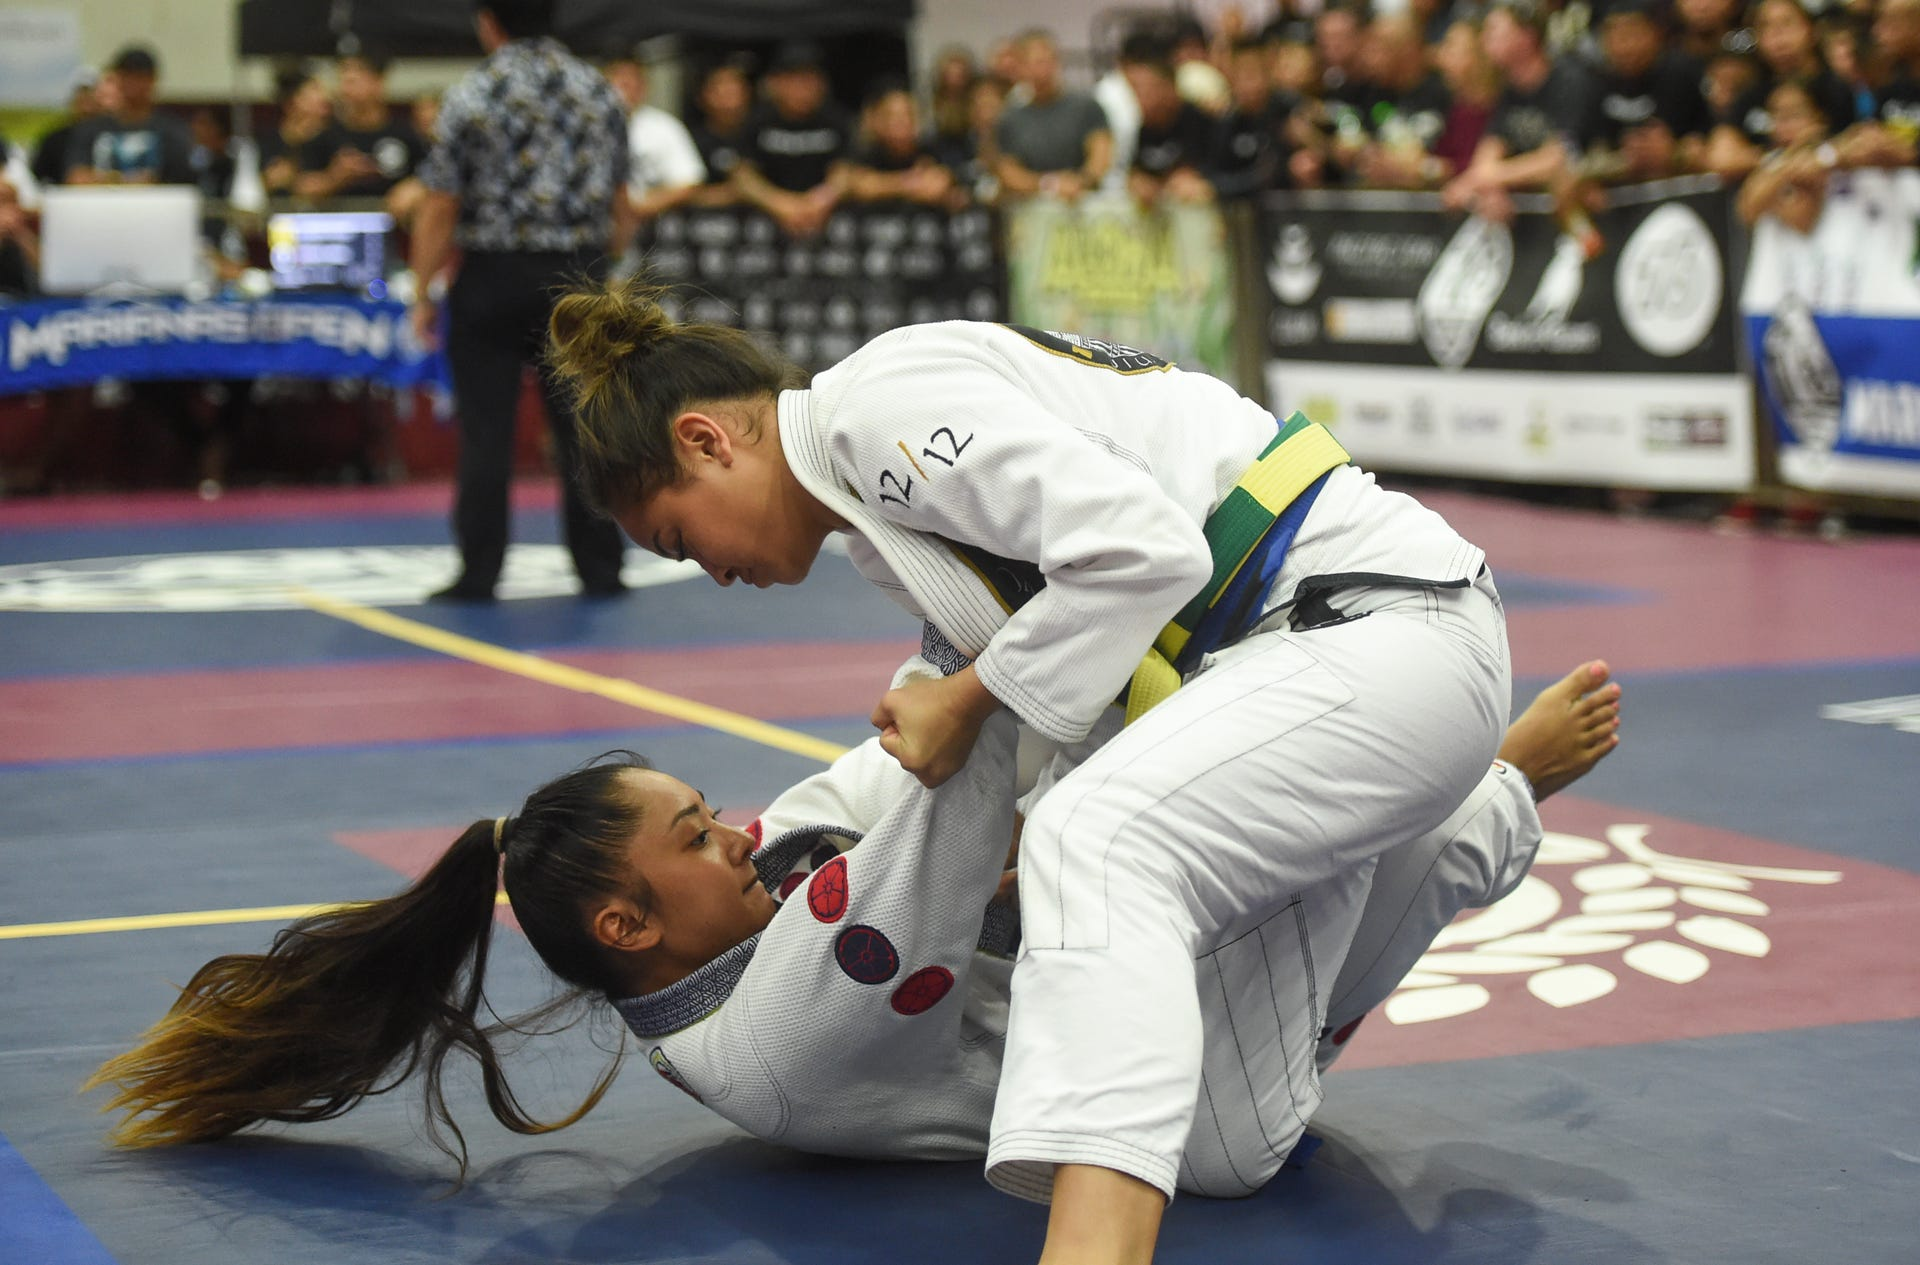 BJJ fans gather for the 2019 Marianas Open